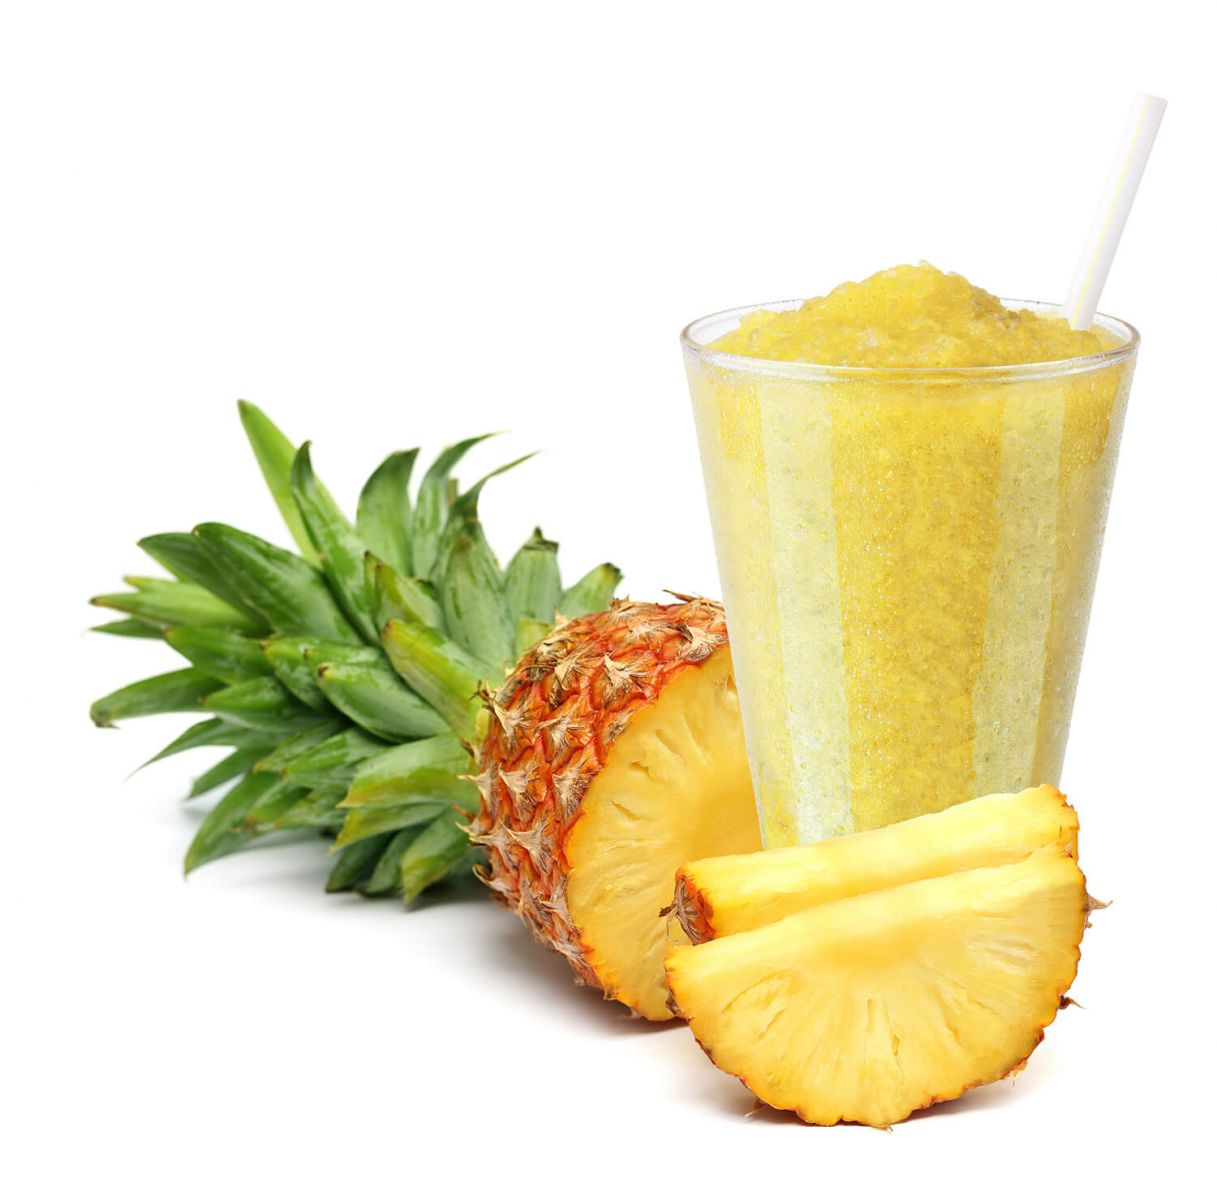 https://www.lavifood.com/en/products/puree/pineapple-1